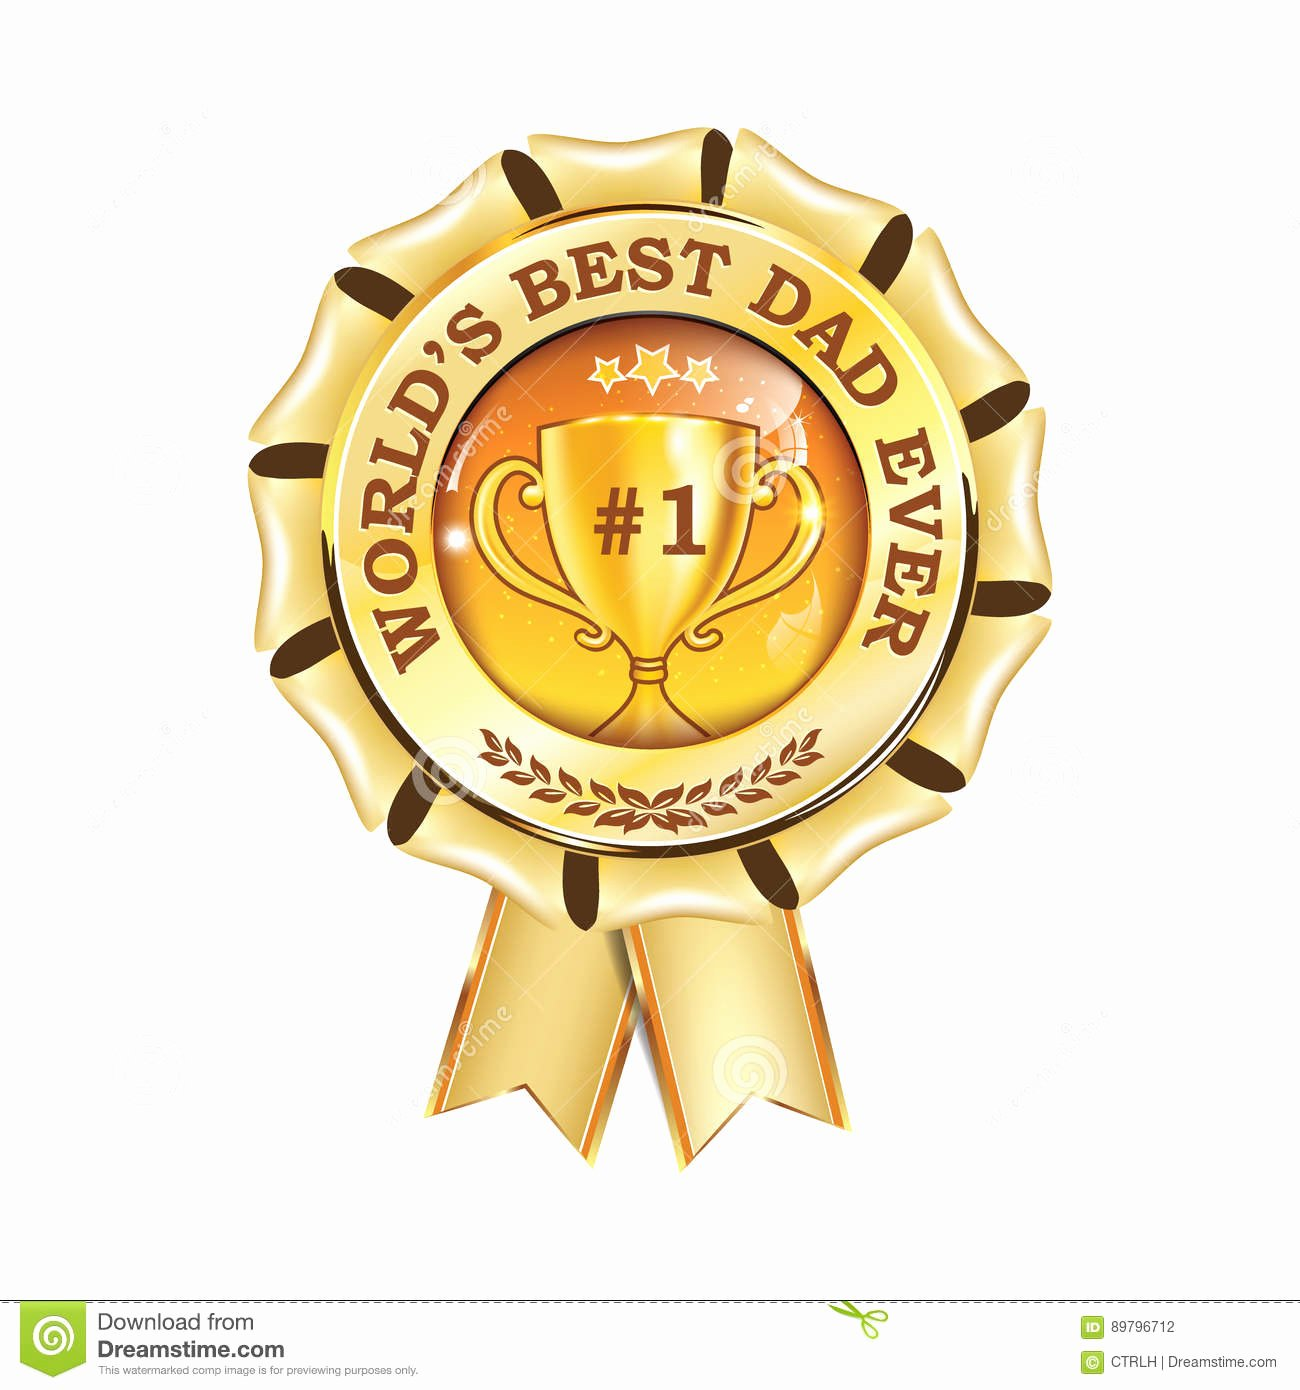 Best Dad Award Printable Luxury World S Best Dad Ever Printable Award Ribbon Stock